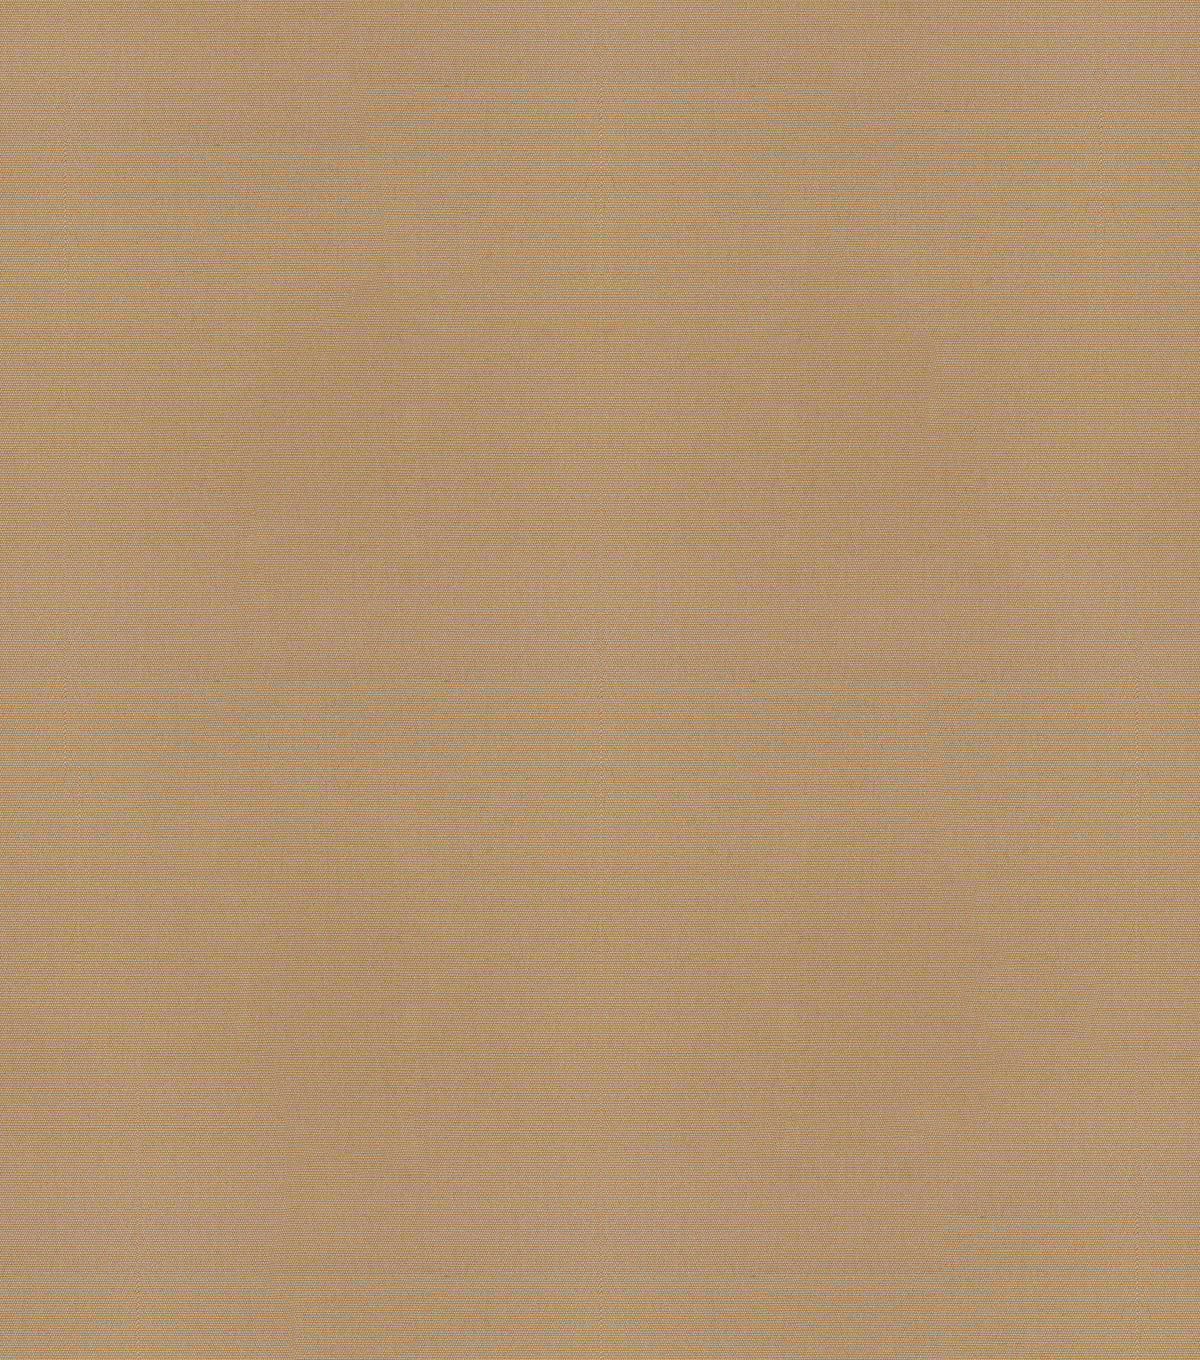 Sunbrella Outdoor Solid Canvas Fabric 54\u0022-Cocoa